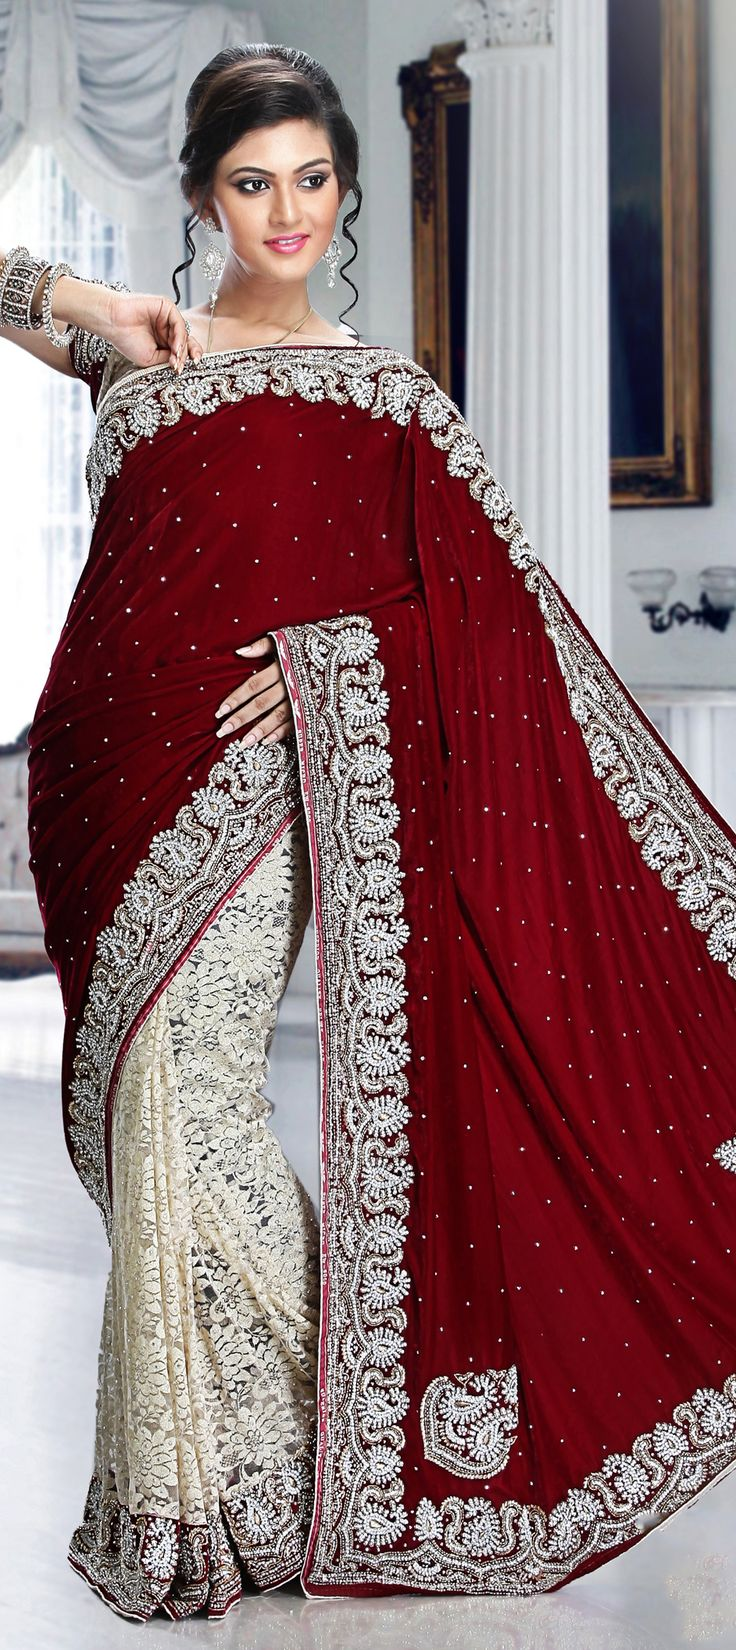 166145: Red and Maroon, White and Off White color family Bridal Wedding Sarees with matching unstitched blouse.